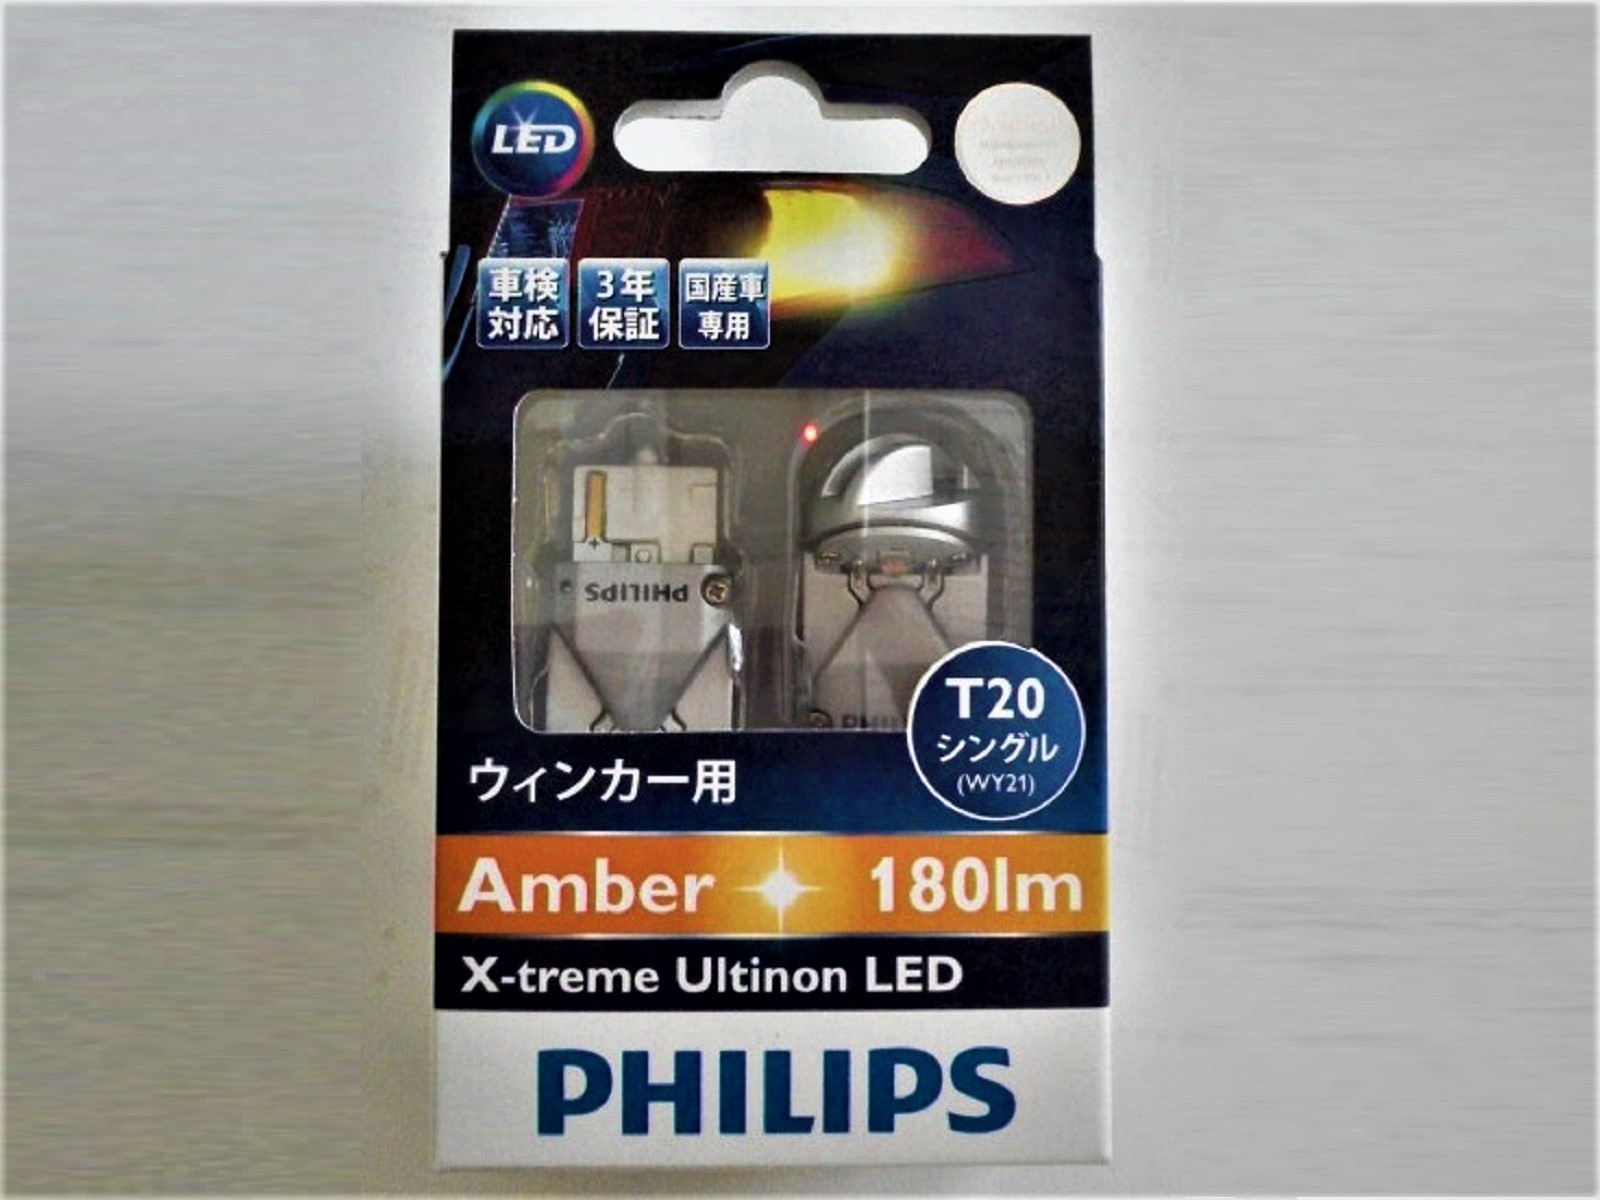 PHILIPS X-treme Ultinon LED T20 Amber / WY21